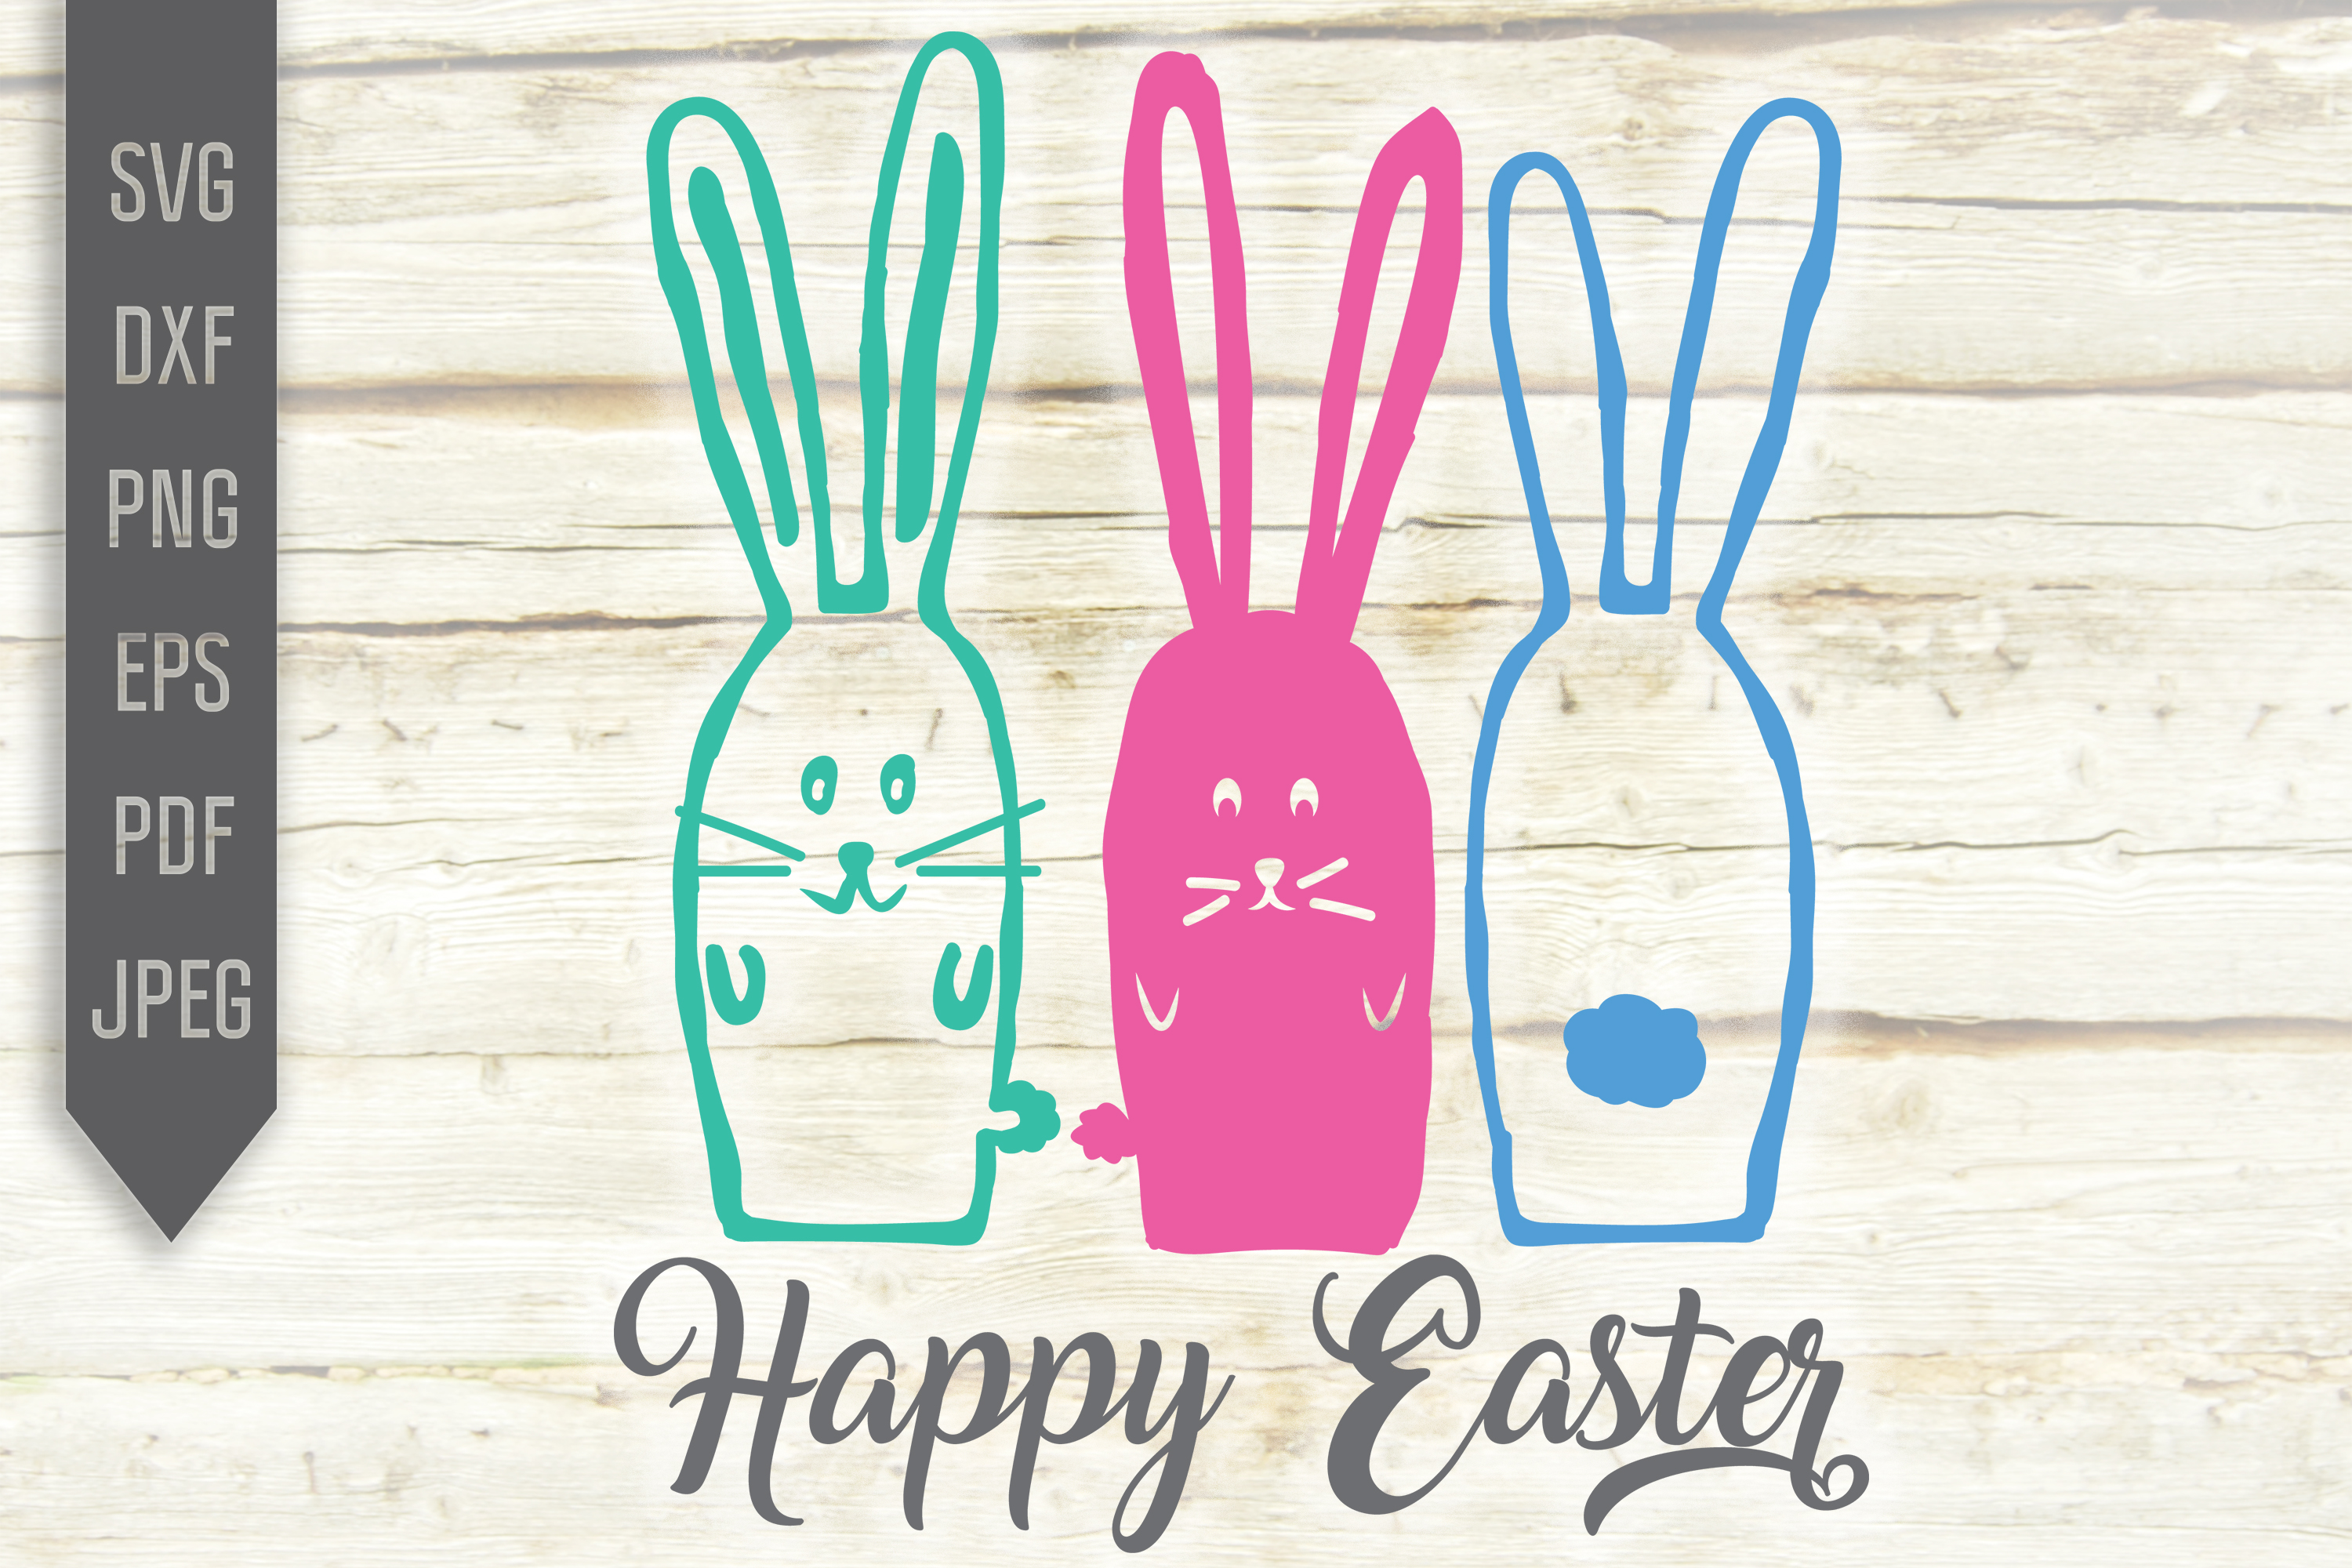 Download Free Three Easter Rabbits Happy Easter Graphic By Svglaboratory SVG Cut Files